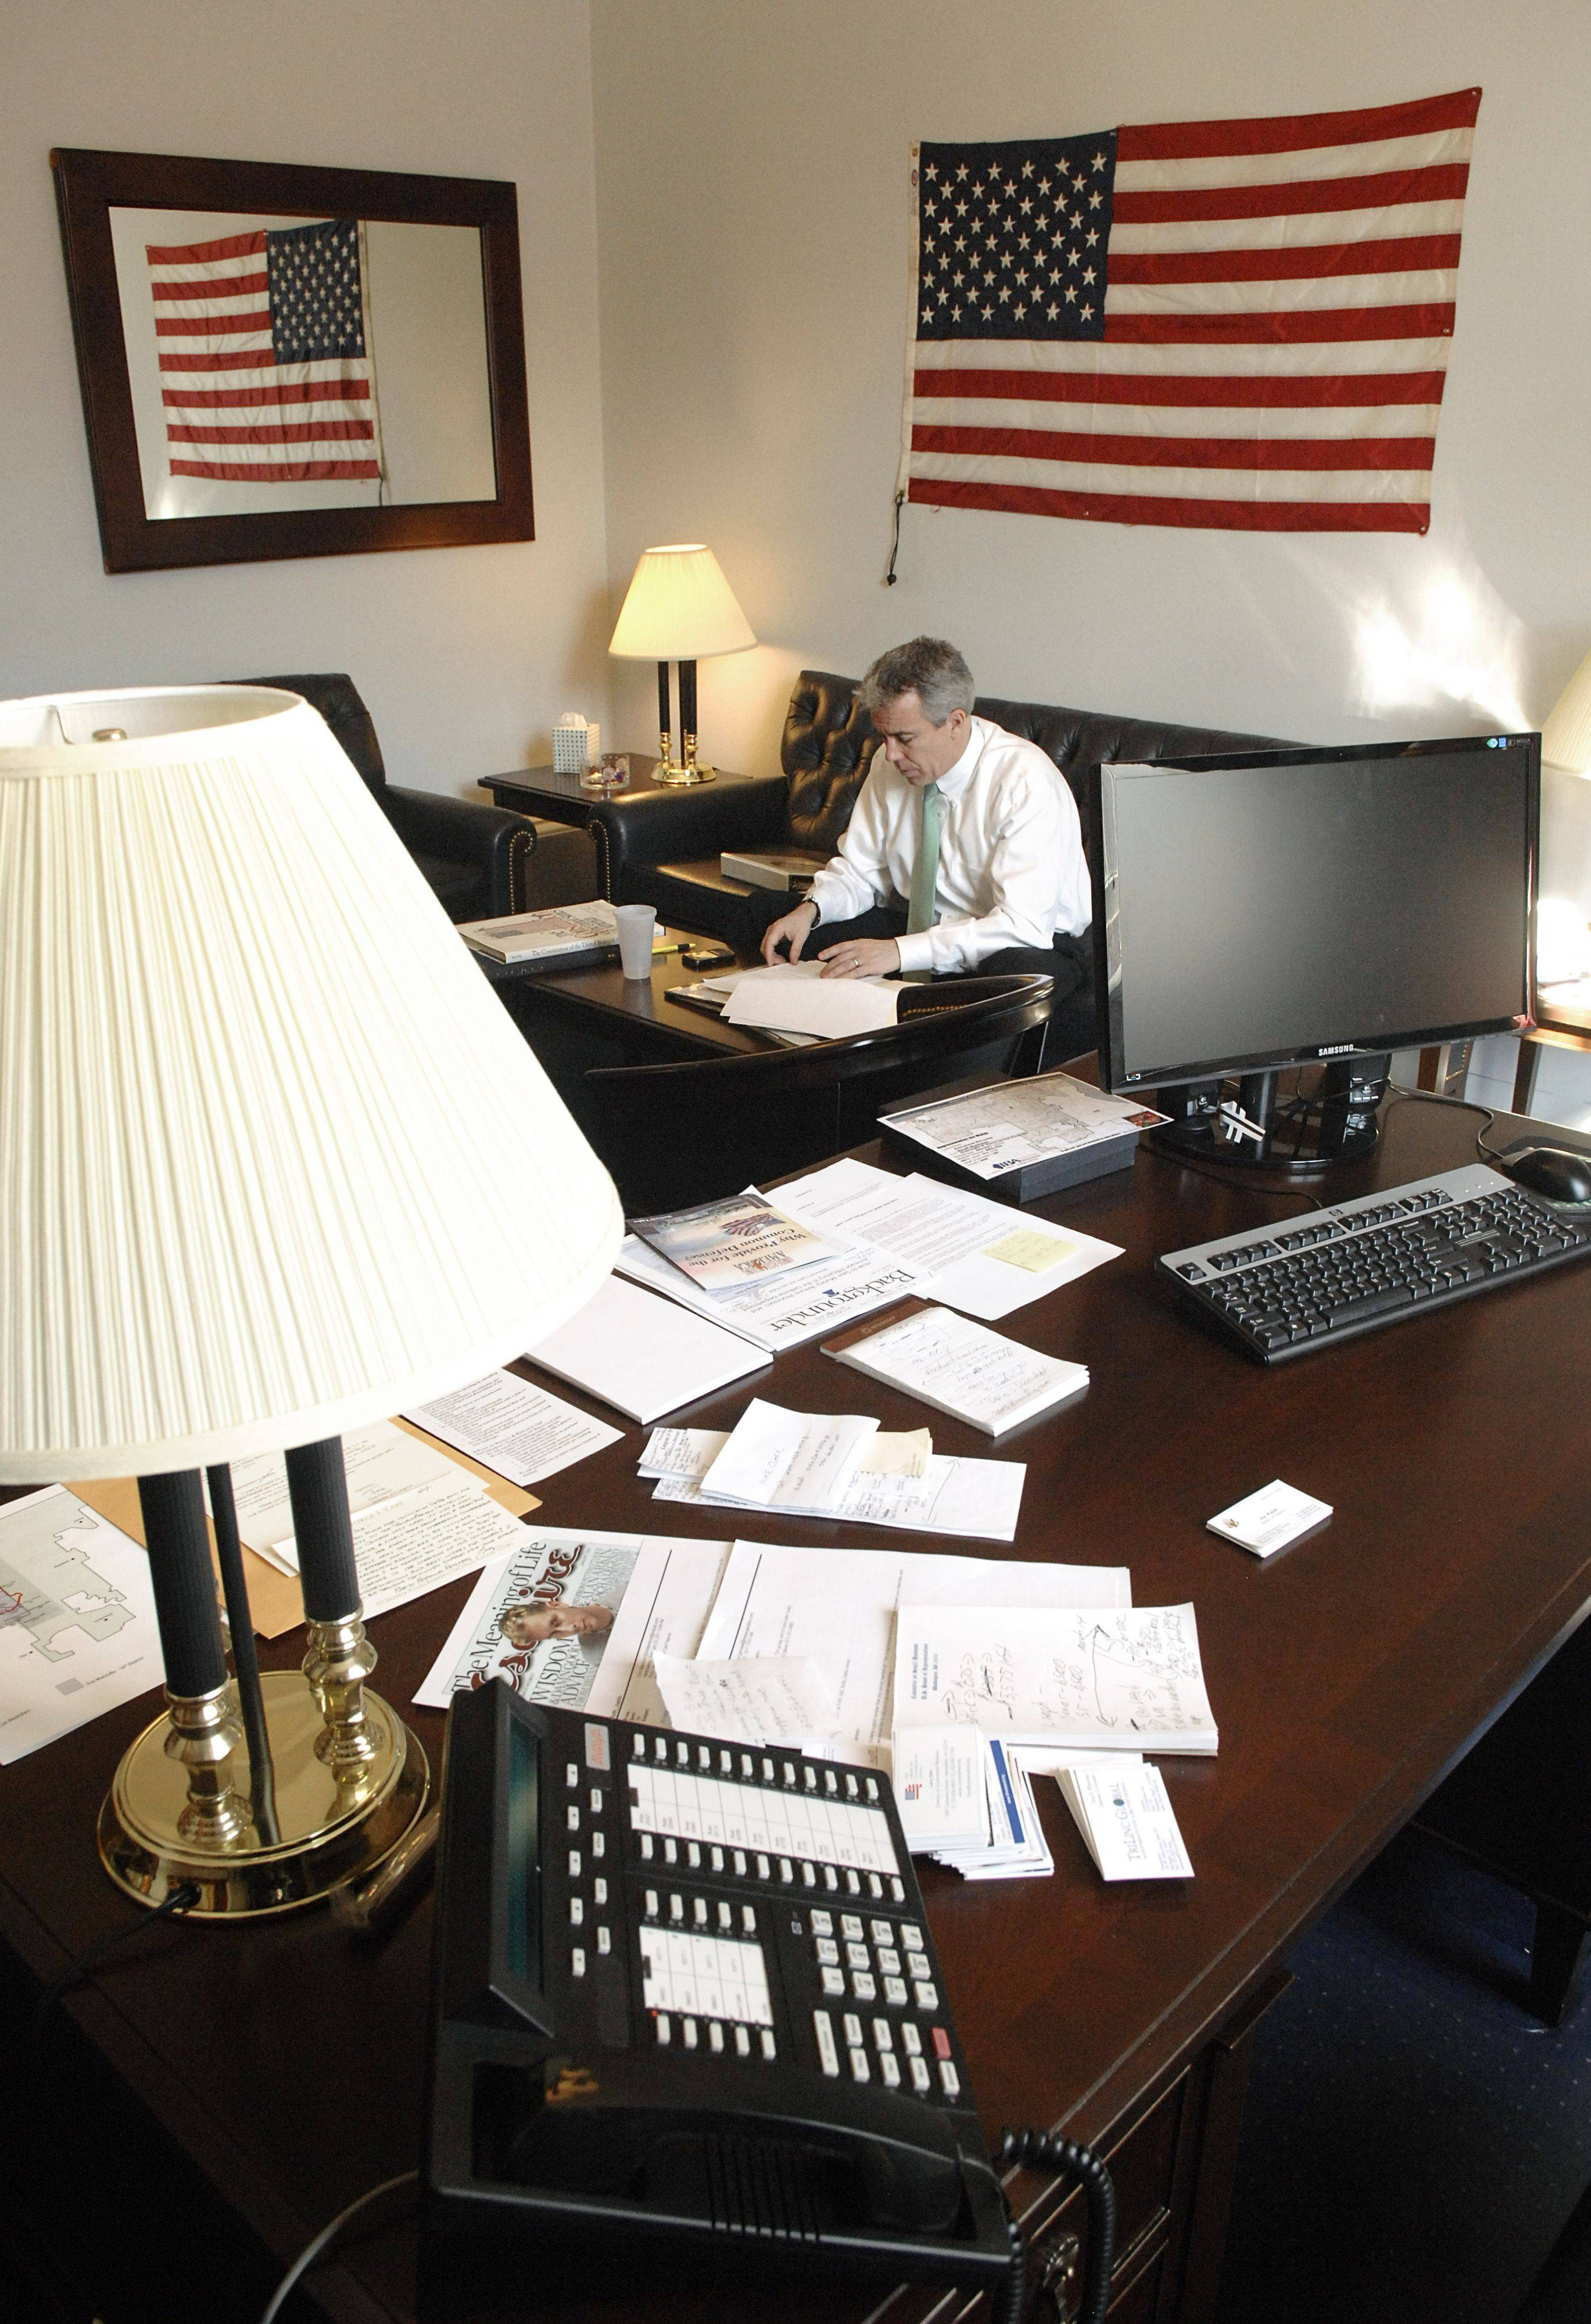 Illinois Congressman Joe Walsh's office in the Cannon House building in Washington, D.C. has a feel of organized chaos, with papers all over but neatly stacked.